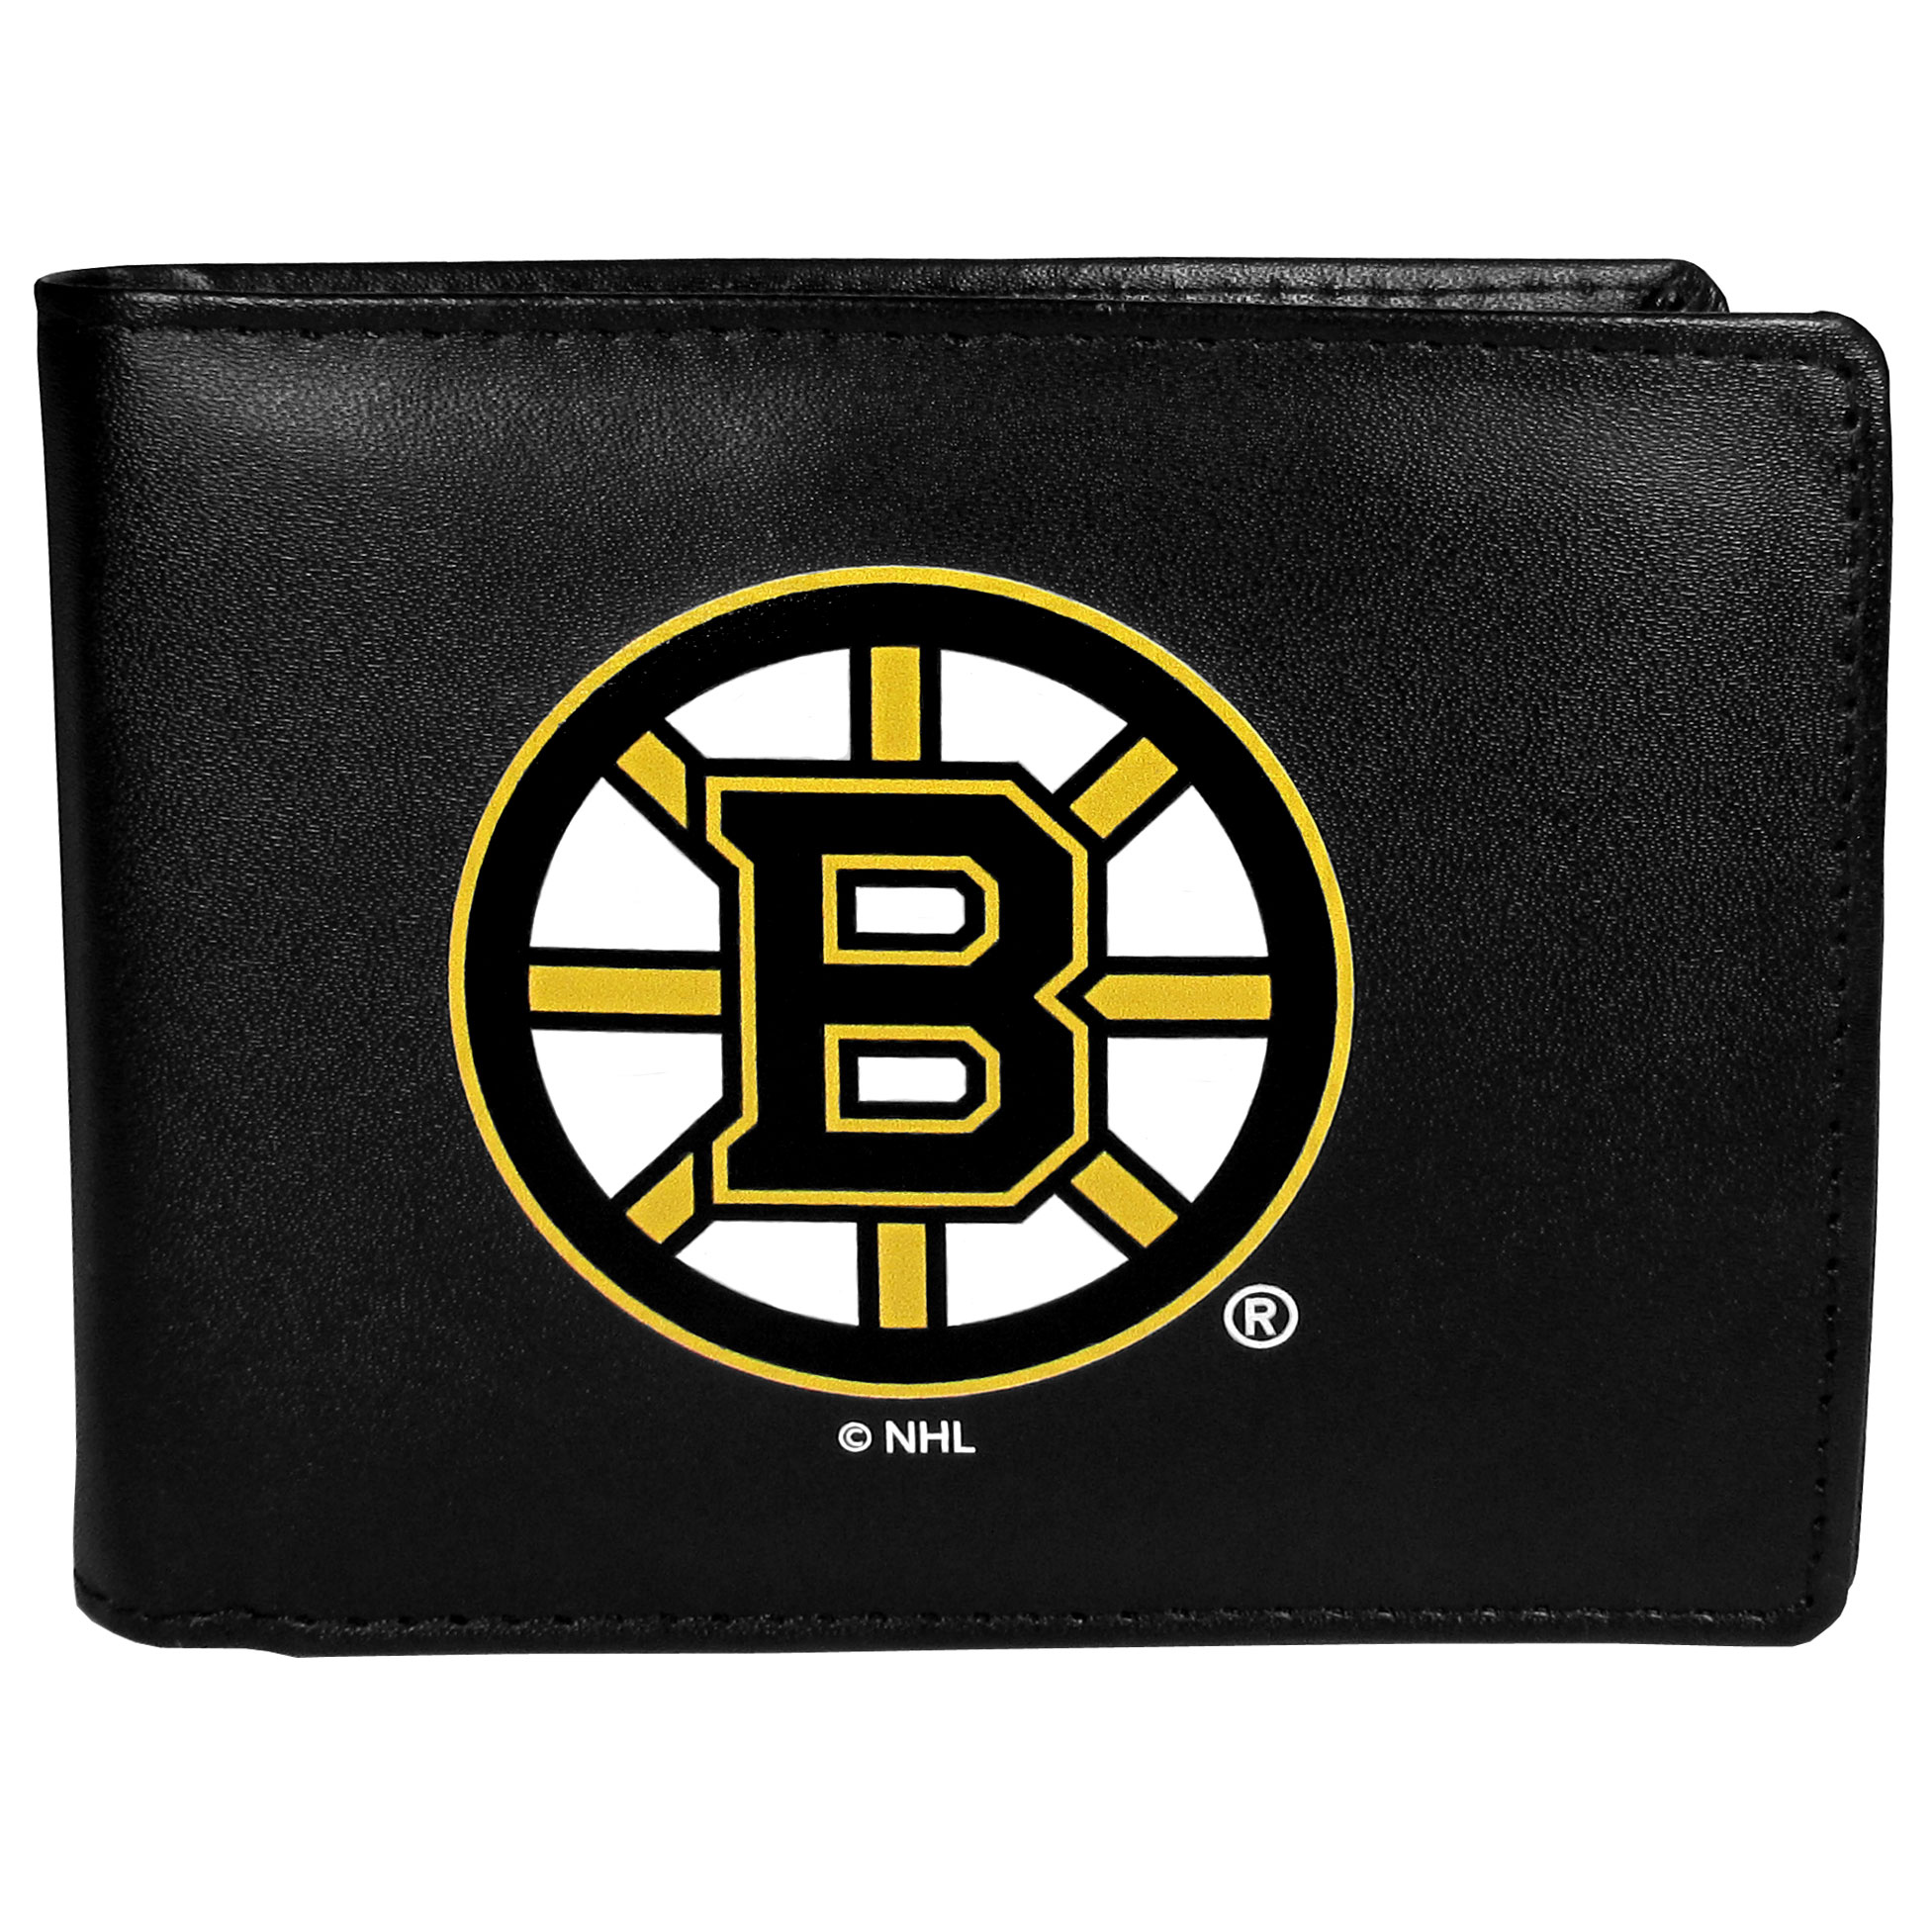 Boston Bruins® Leather Bi-fold Wallet, Large Logo - Our classic fine leather bi-fold wallet is meticulously crafted with genuine leather that will age beautifully so you will have a quality wallet for years to come. The wallet opens to a large, billfold pocket and numerous credit card slots and has a convenient windowed ID slot. The front of the wallet features an extra large Boston Bruins® printed logo.